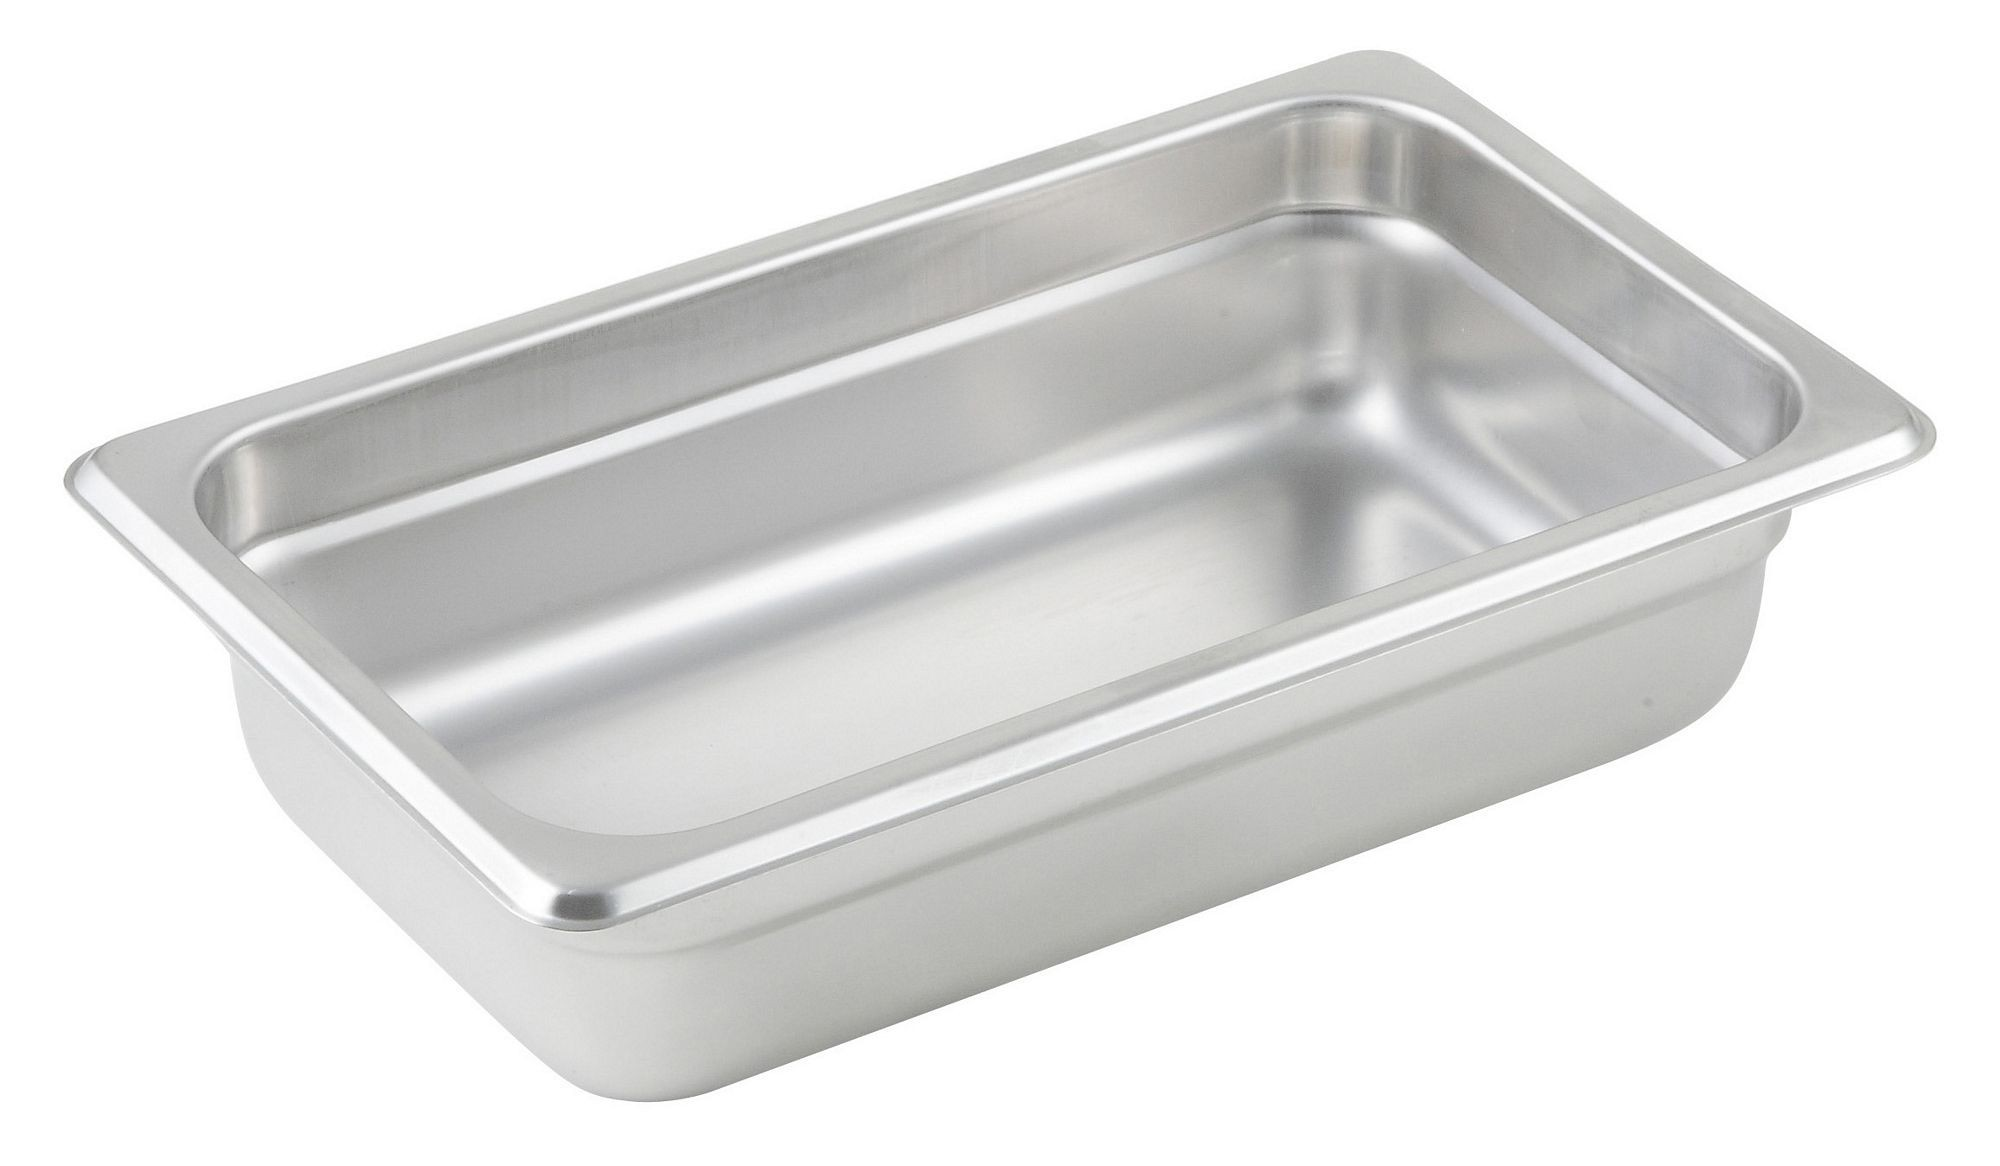 "Winco SPJM-402 1/4 Size Anti-Jam 24 Gauge Steam Table Pan 2-1/2"" Deep"